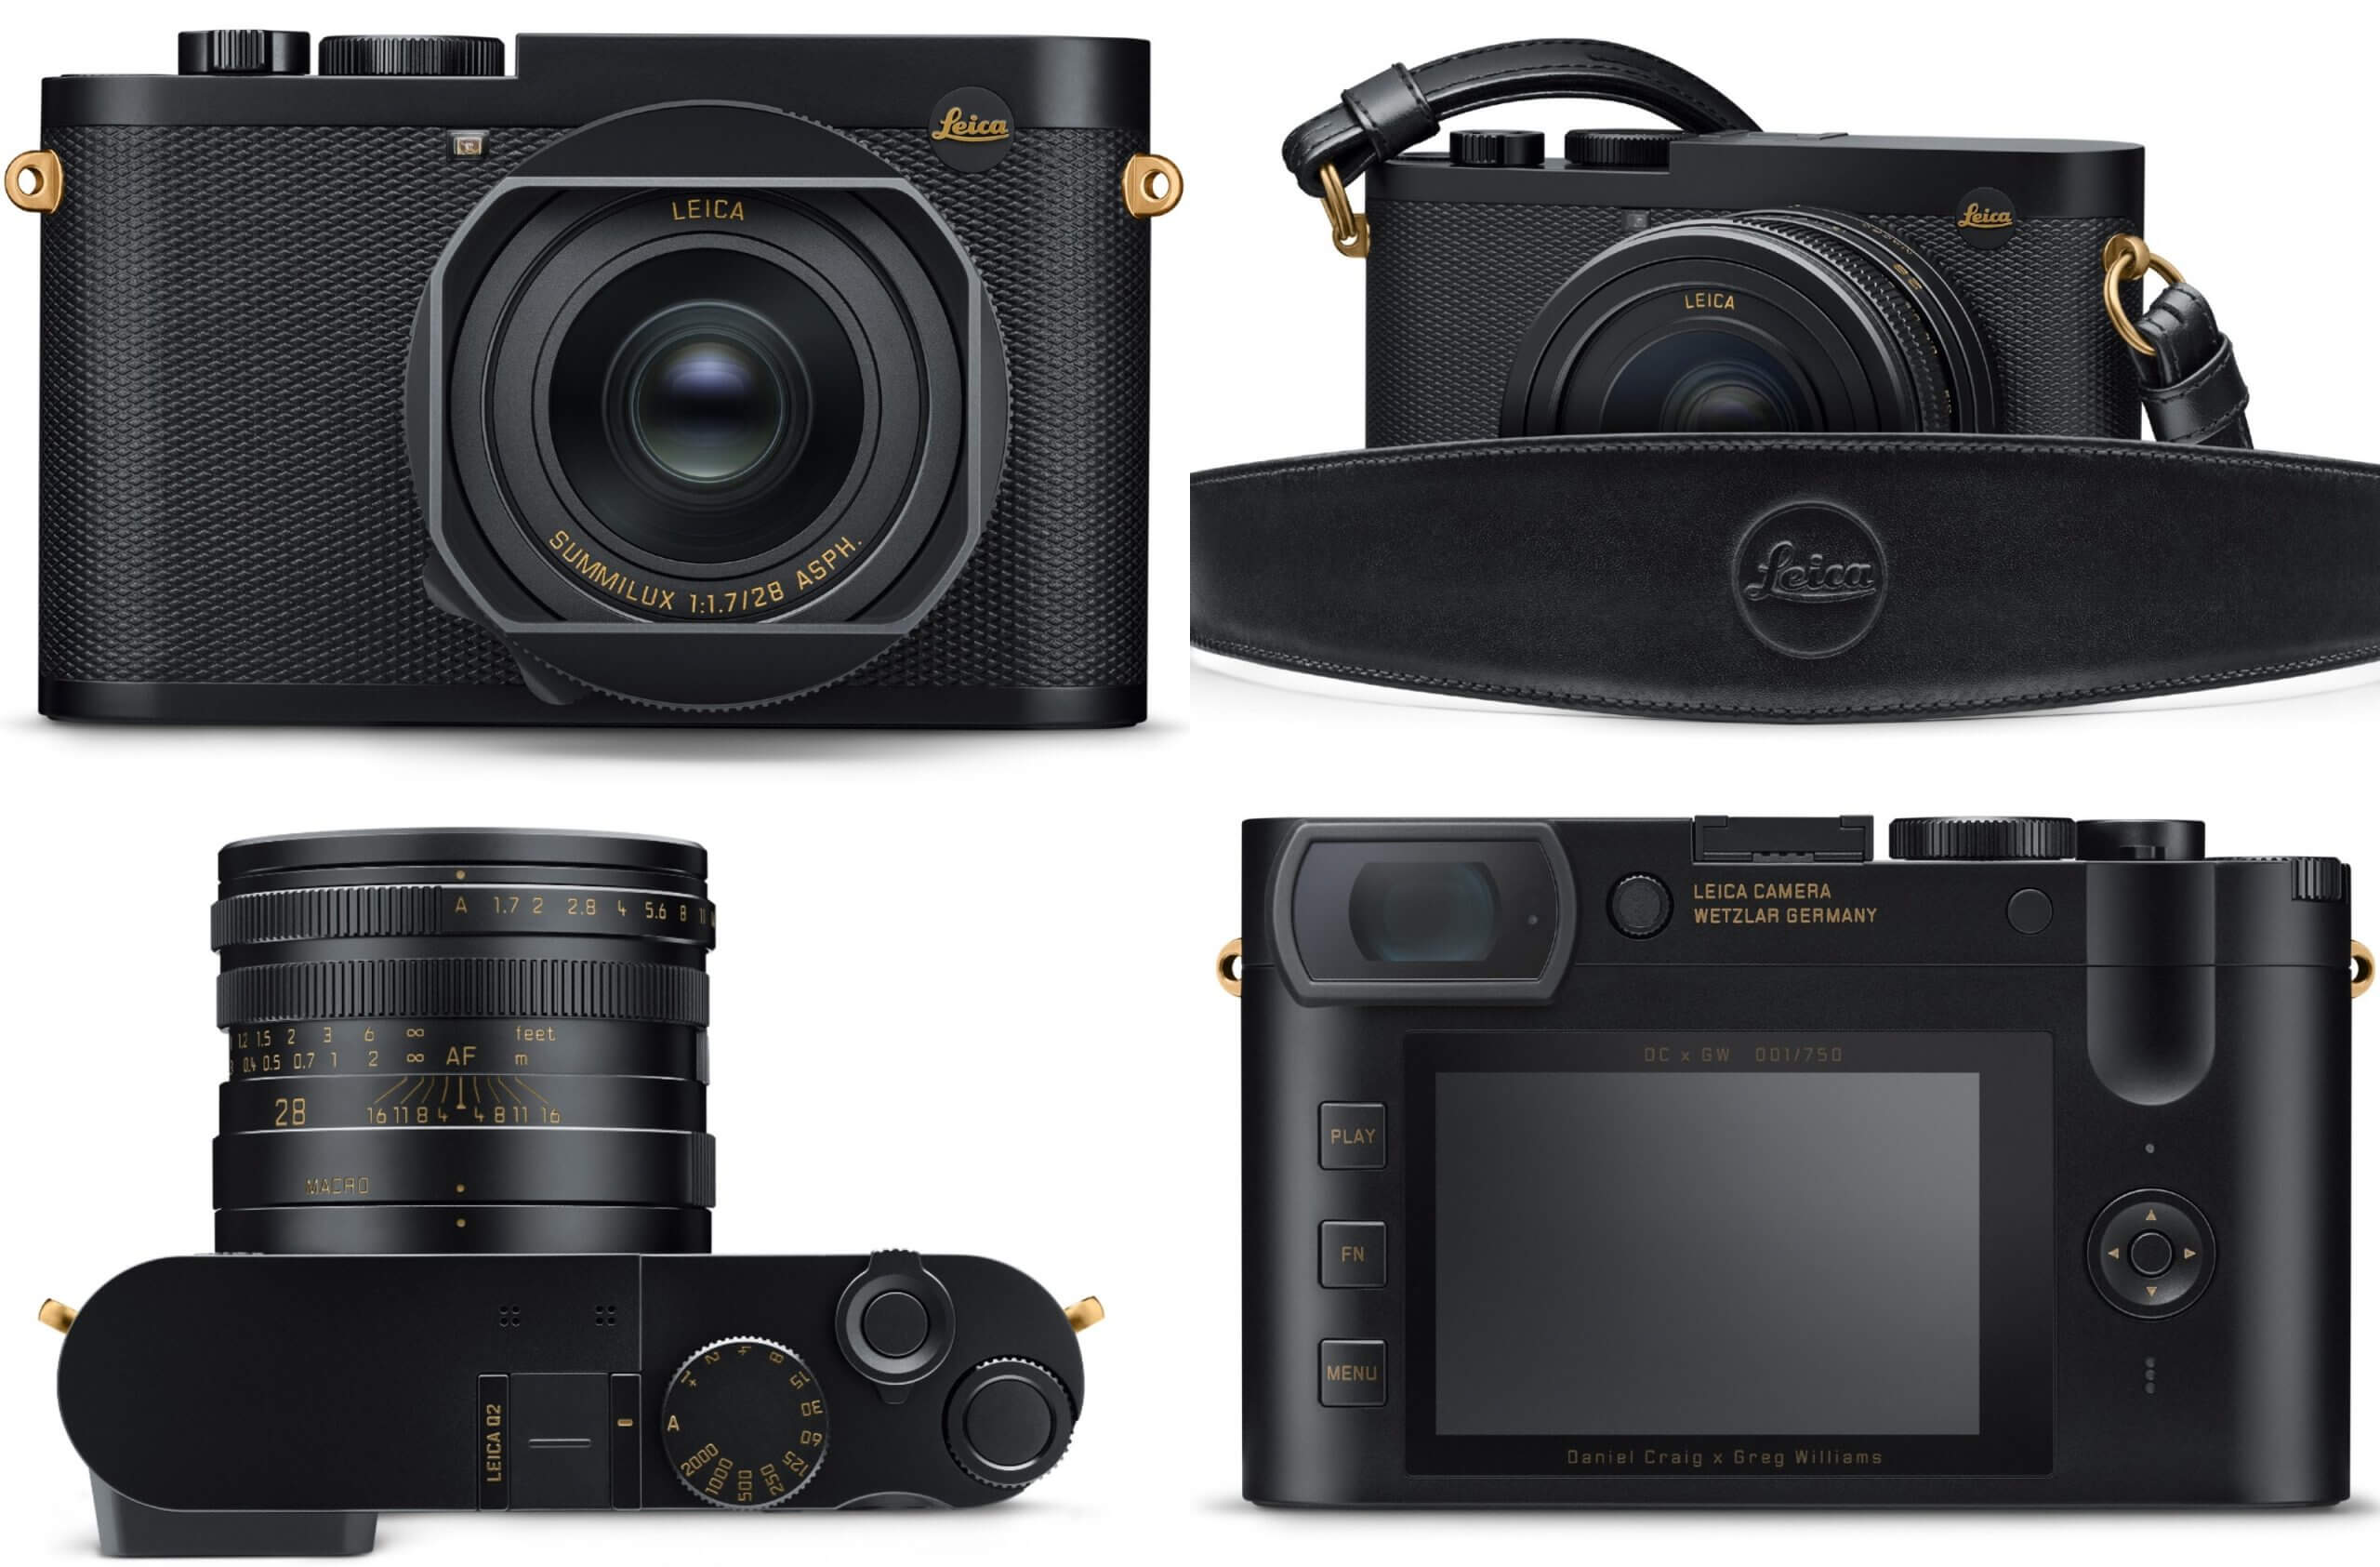 Leica выпустила камеру Q2 Daniel Craig x Greg Williams за $6995